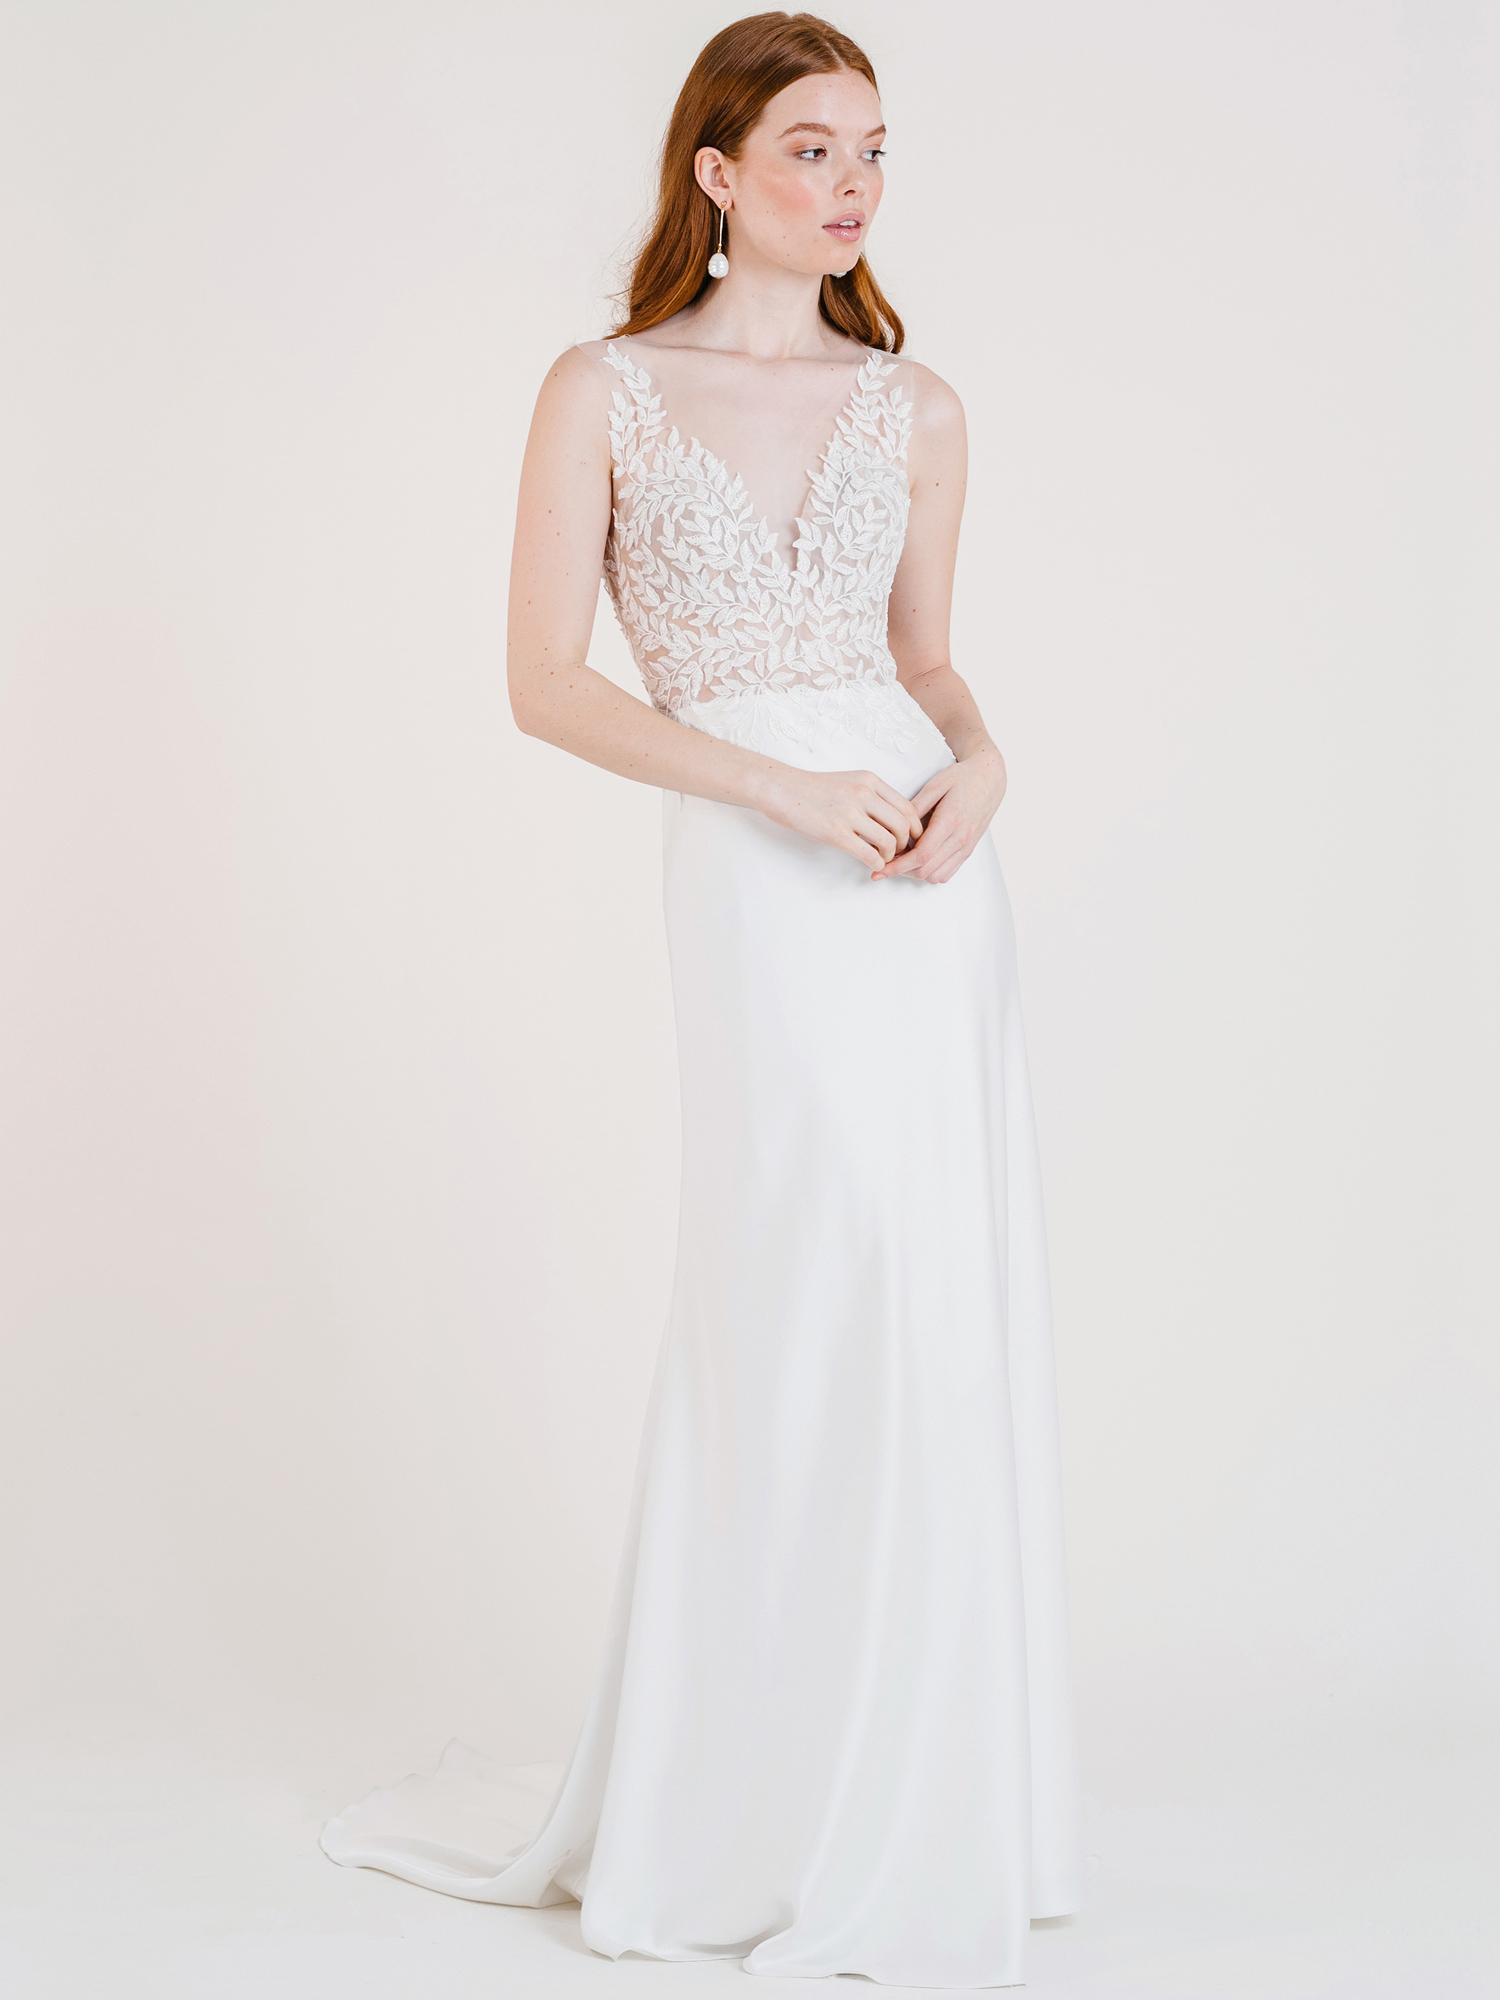 jenny by jenny yoo sleeveless v-neck a-line wedding dress fall 2020